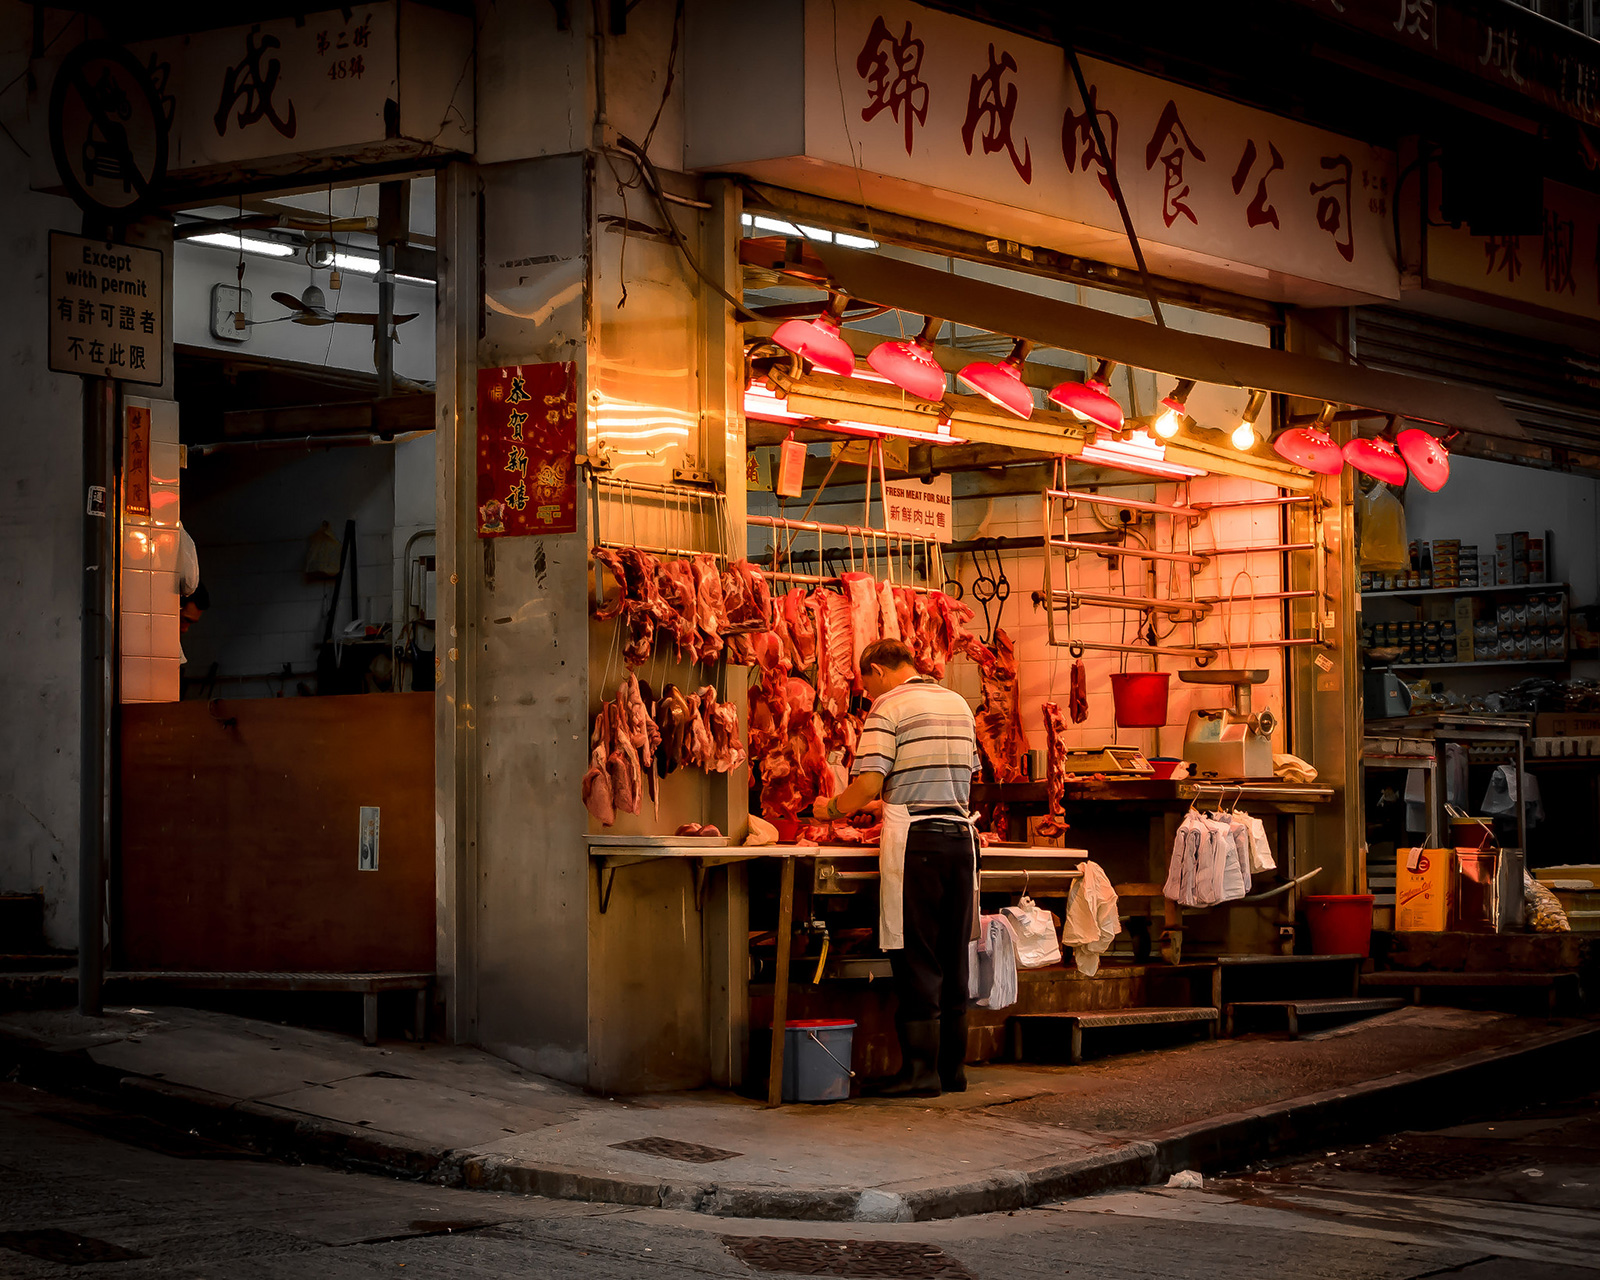 Shopfronts in Sai Ying Pun (Photo: november-13/Flickr)